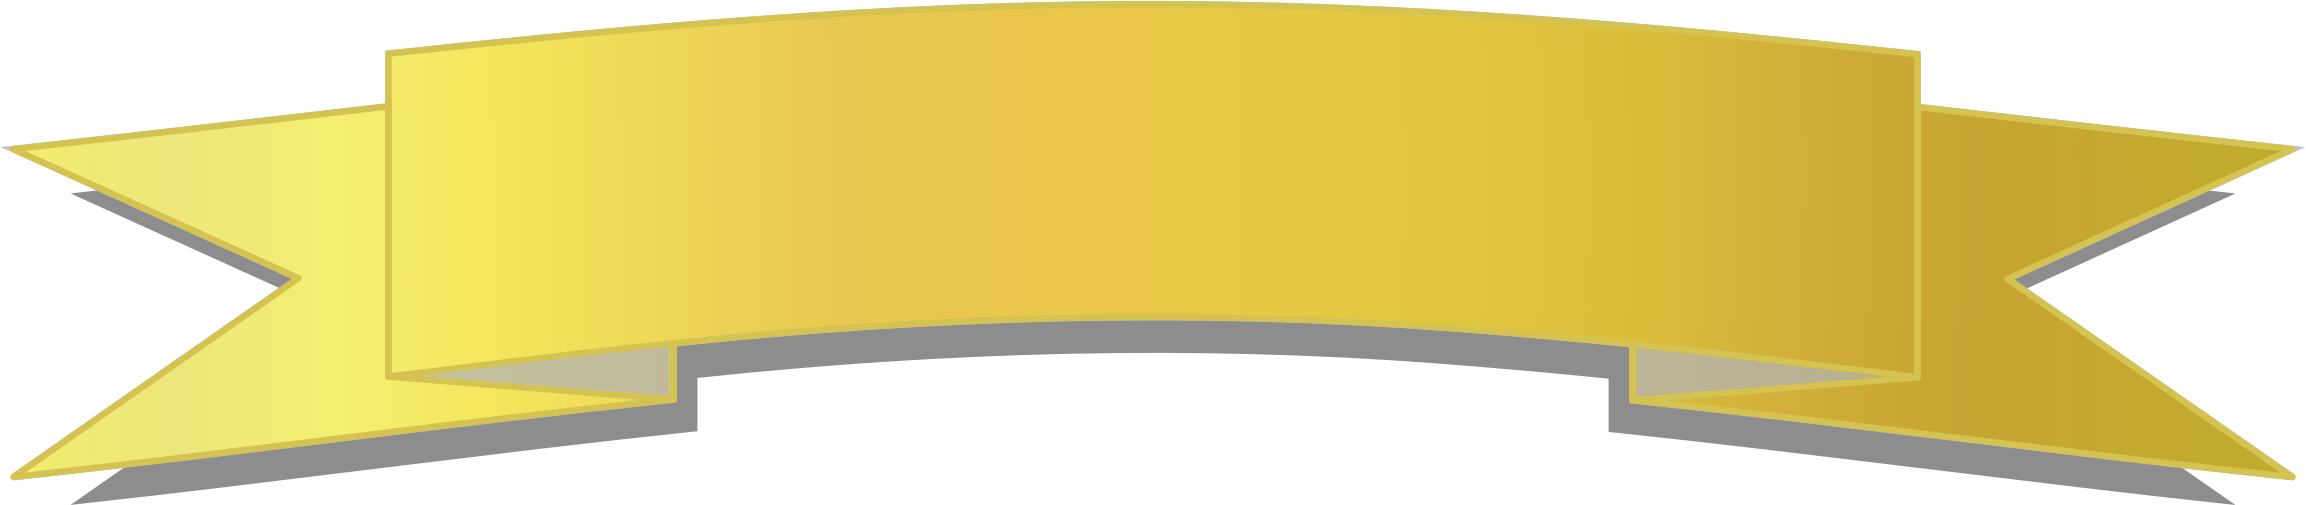 Yellow Banner Png.